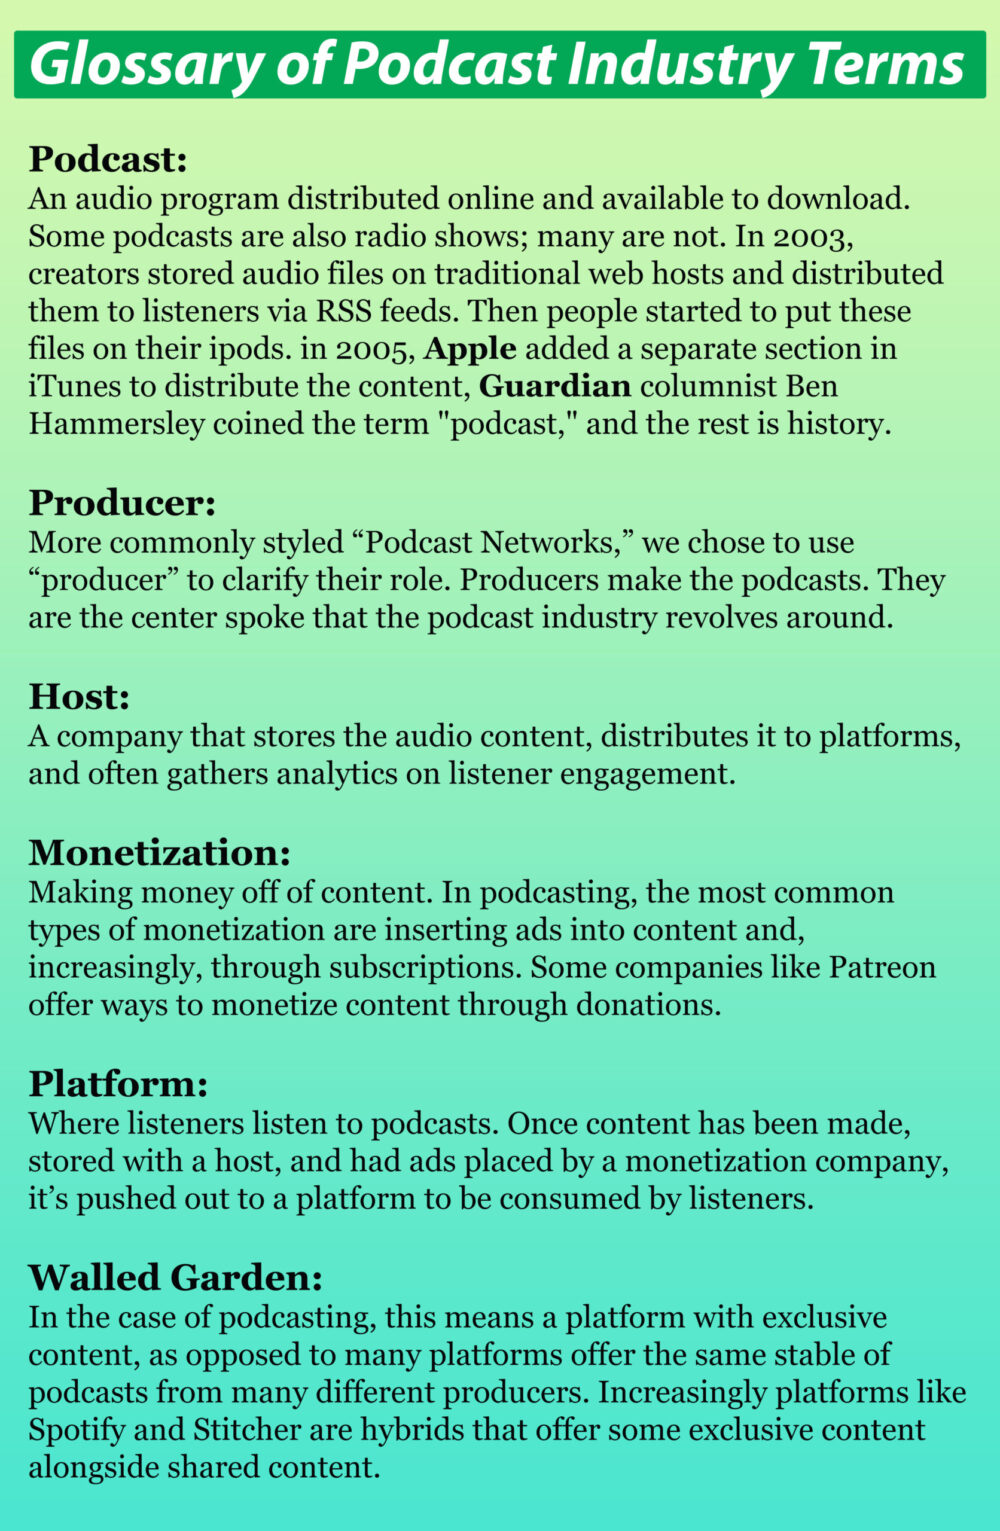 Glossary of Podcast Industry Terms